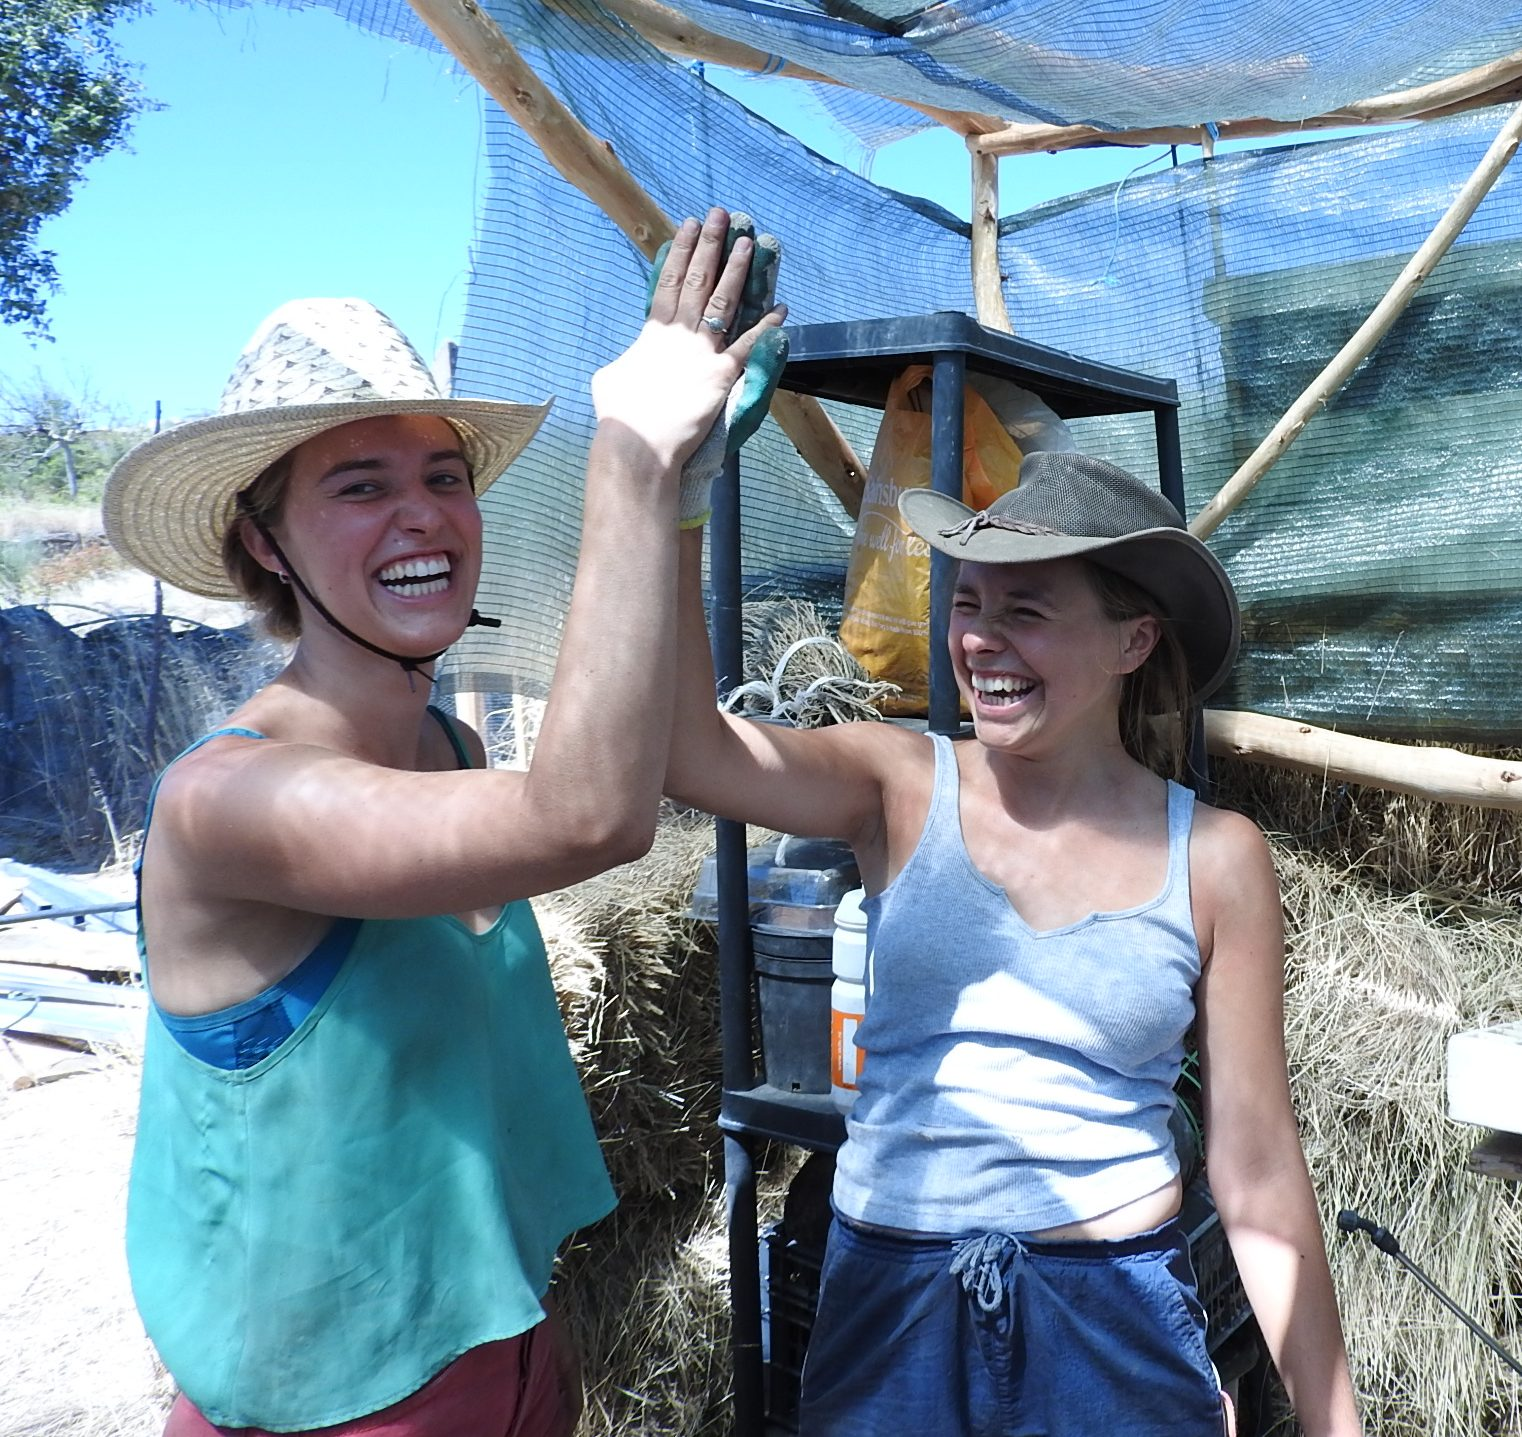 These two lovely ladies built our greenhouse